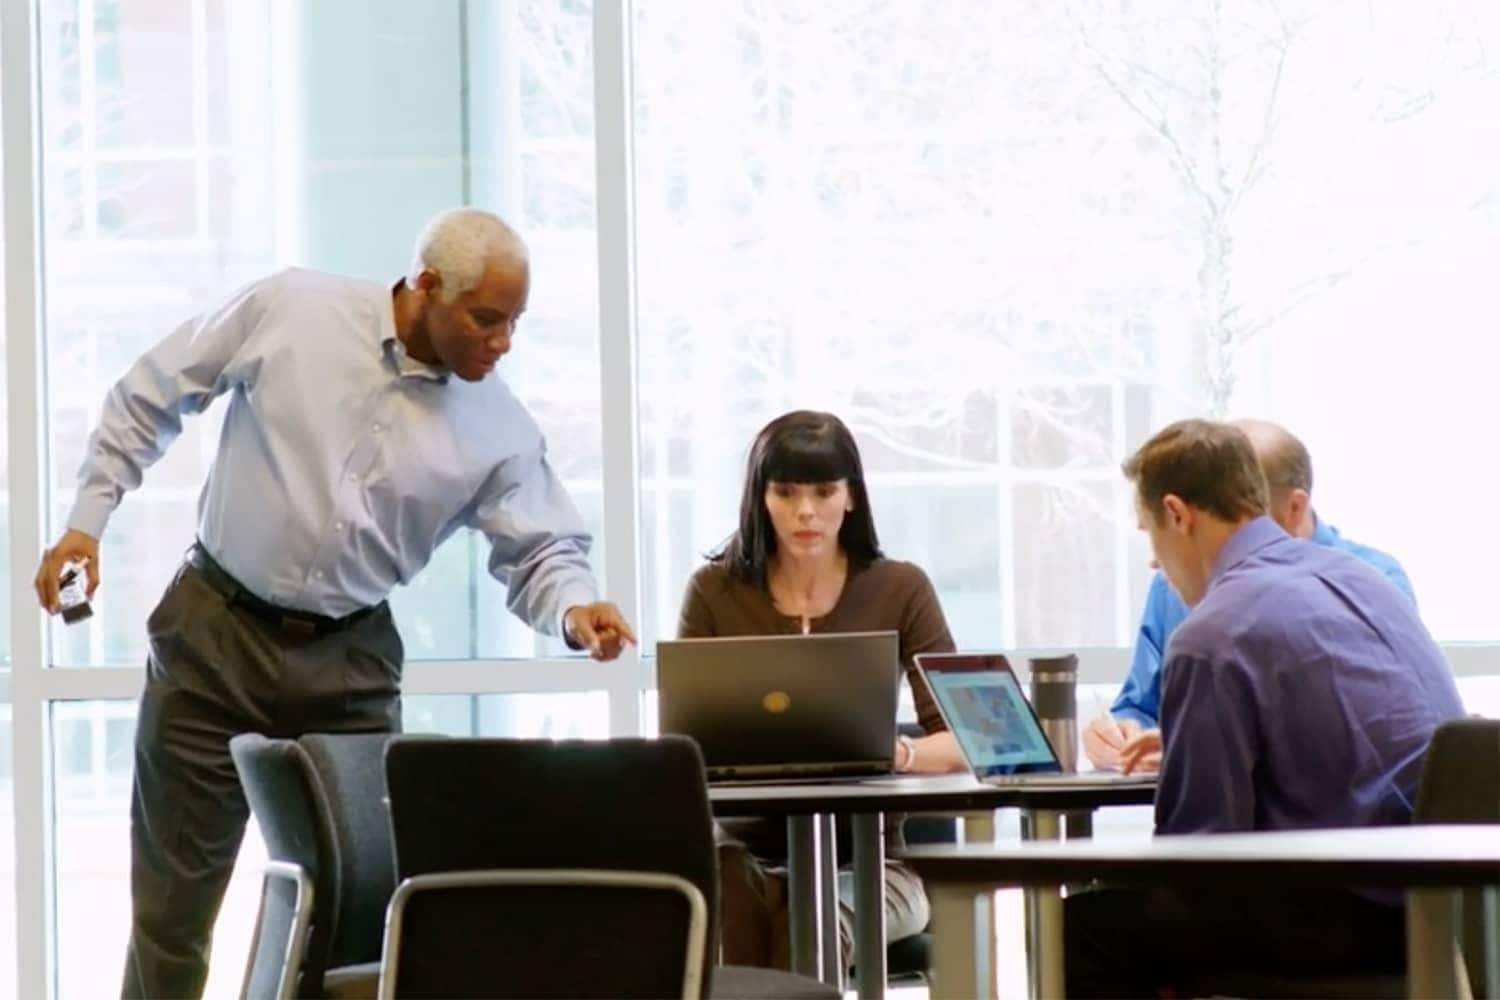 Group of coworkers collaborating in a conference room